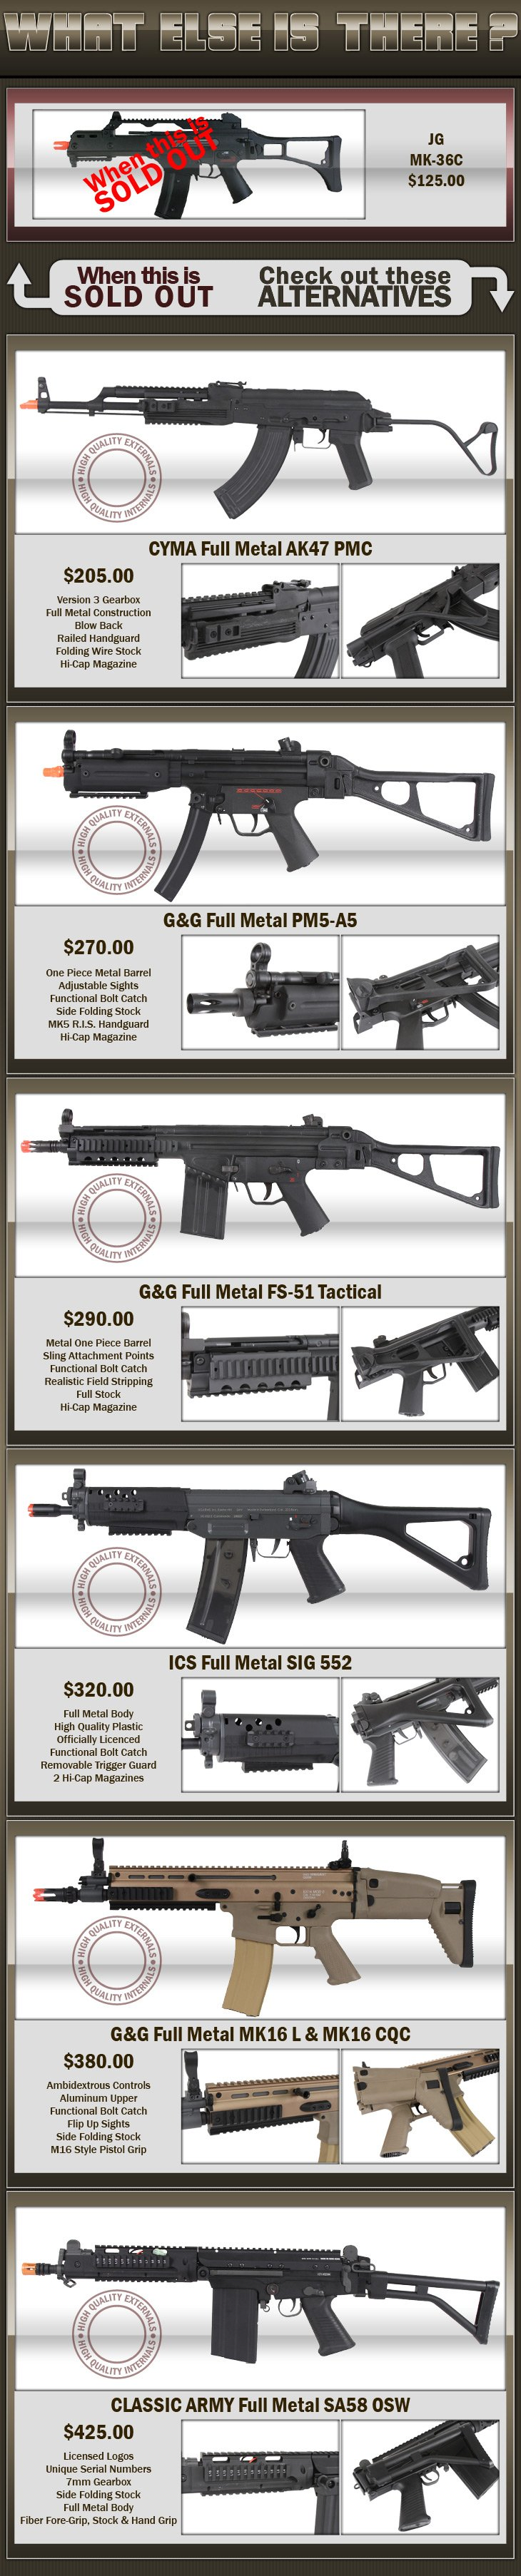 JG MK36C Alternative Options